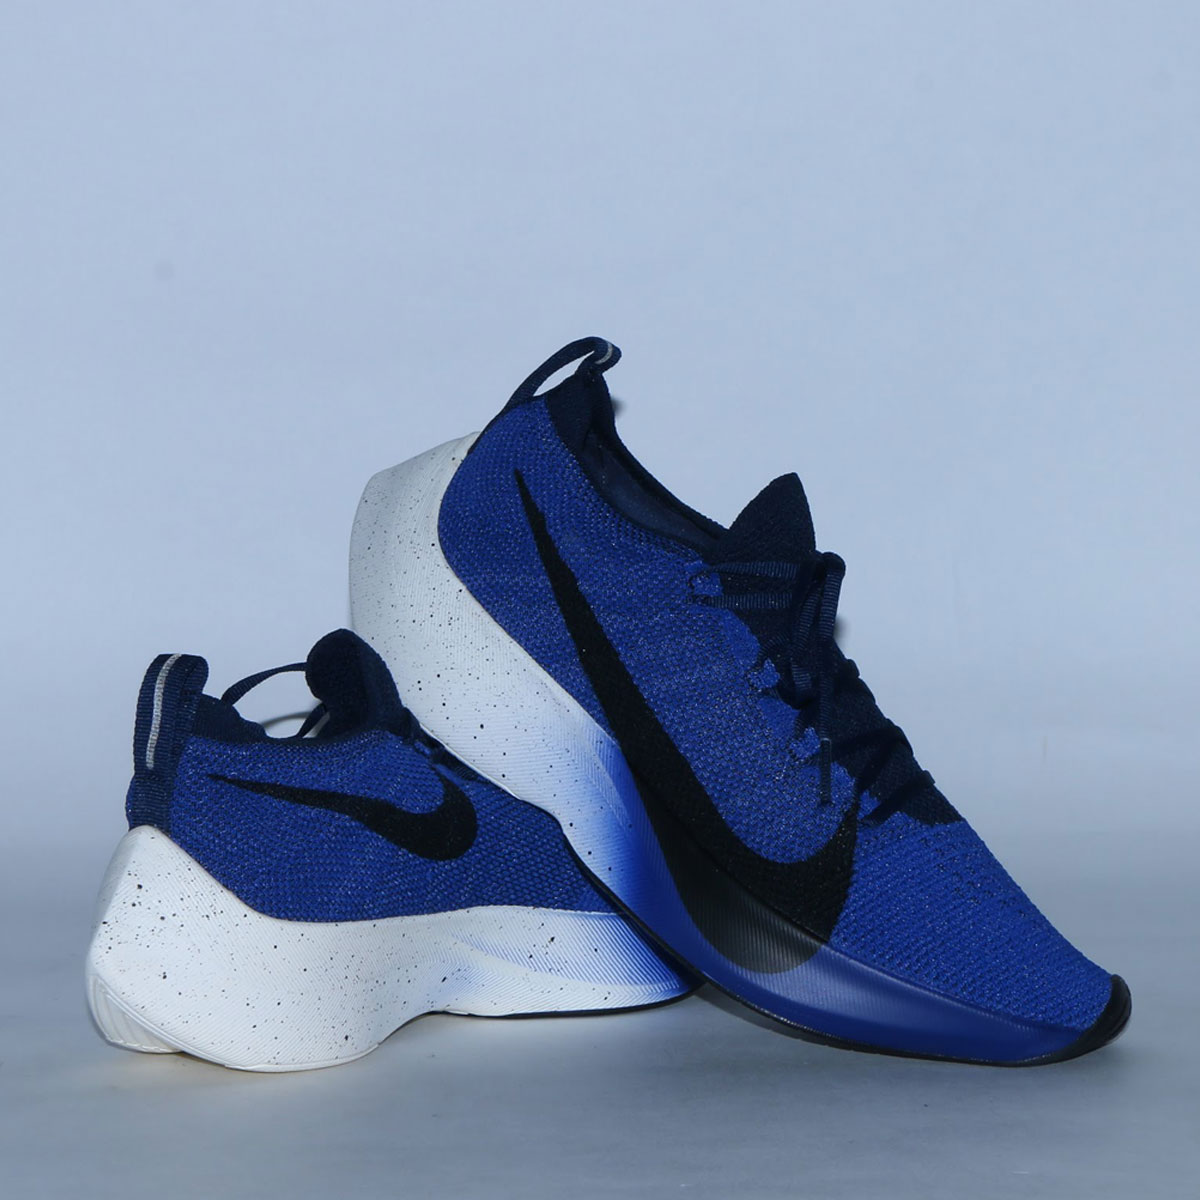 facb008ef686b NIKE VAPOR STREET FLYKNIT (Nike vapor street fried food knit) (DEEP ROYAL BLACK-COLLEGE  NAVY-SAIL) 18SU-S